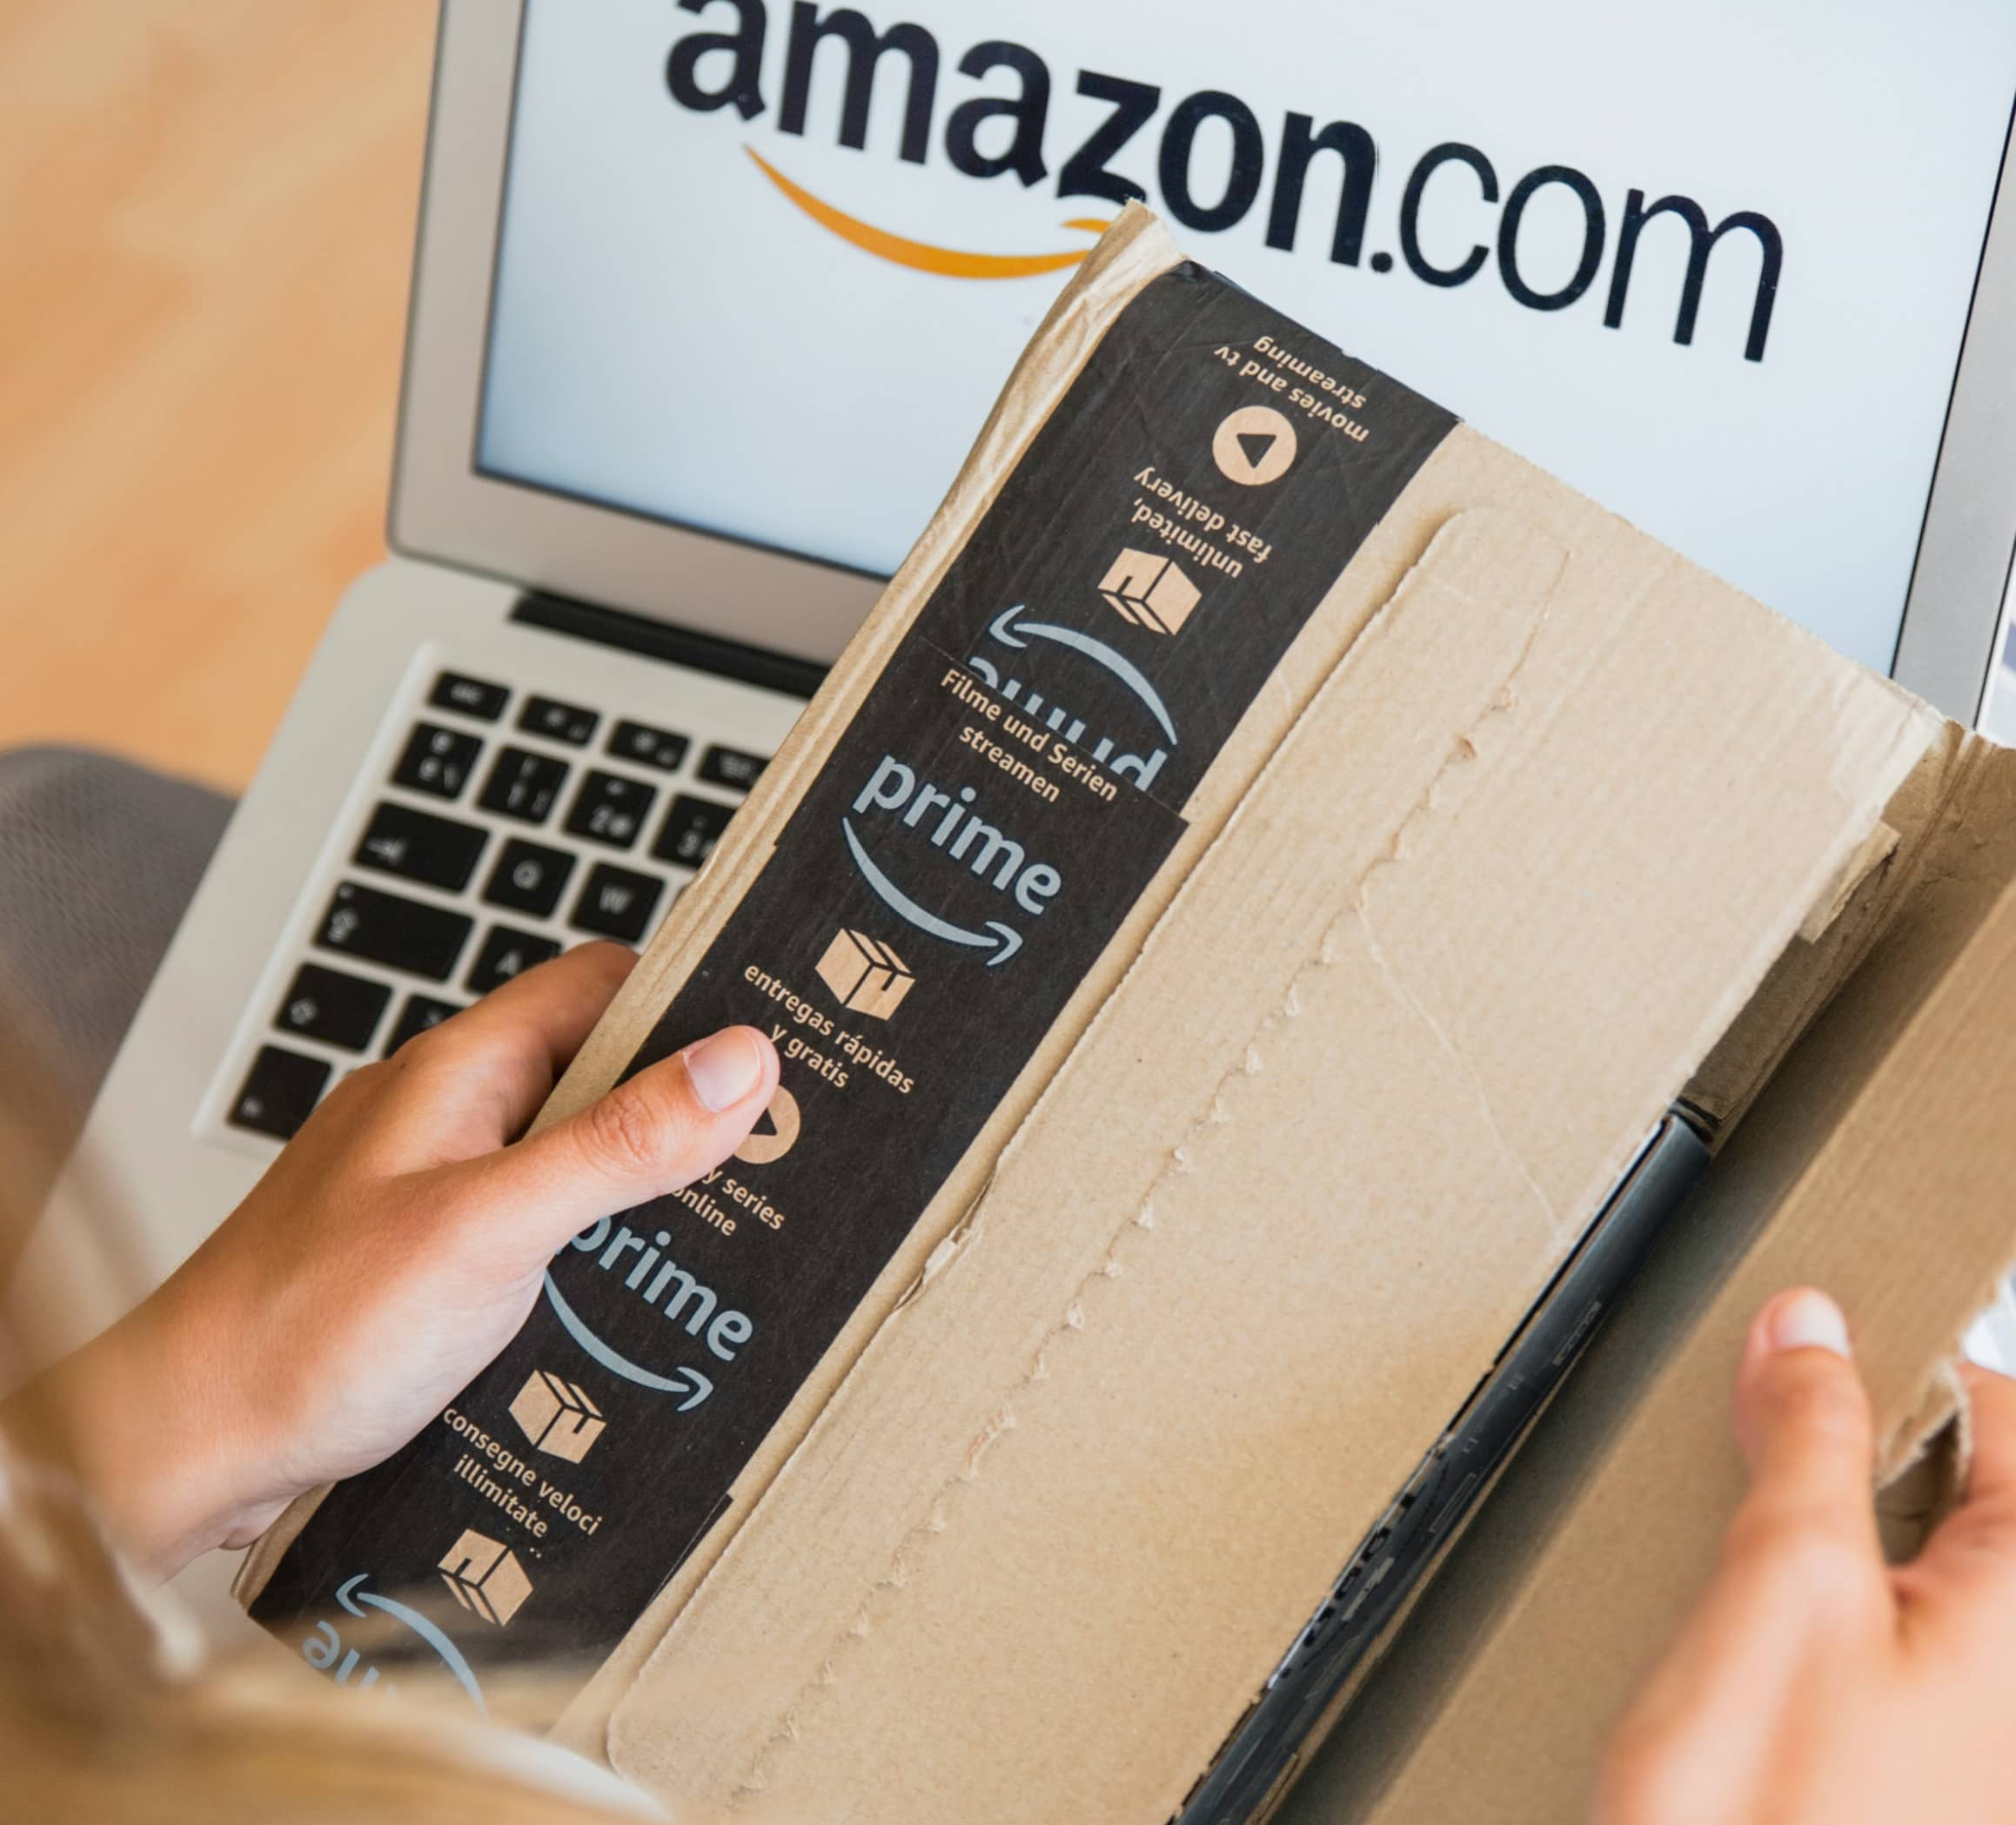 WANT TO SELL ON AMAZON? BUSINESSES MUST WEIGH PROS, CONS